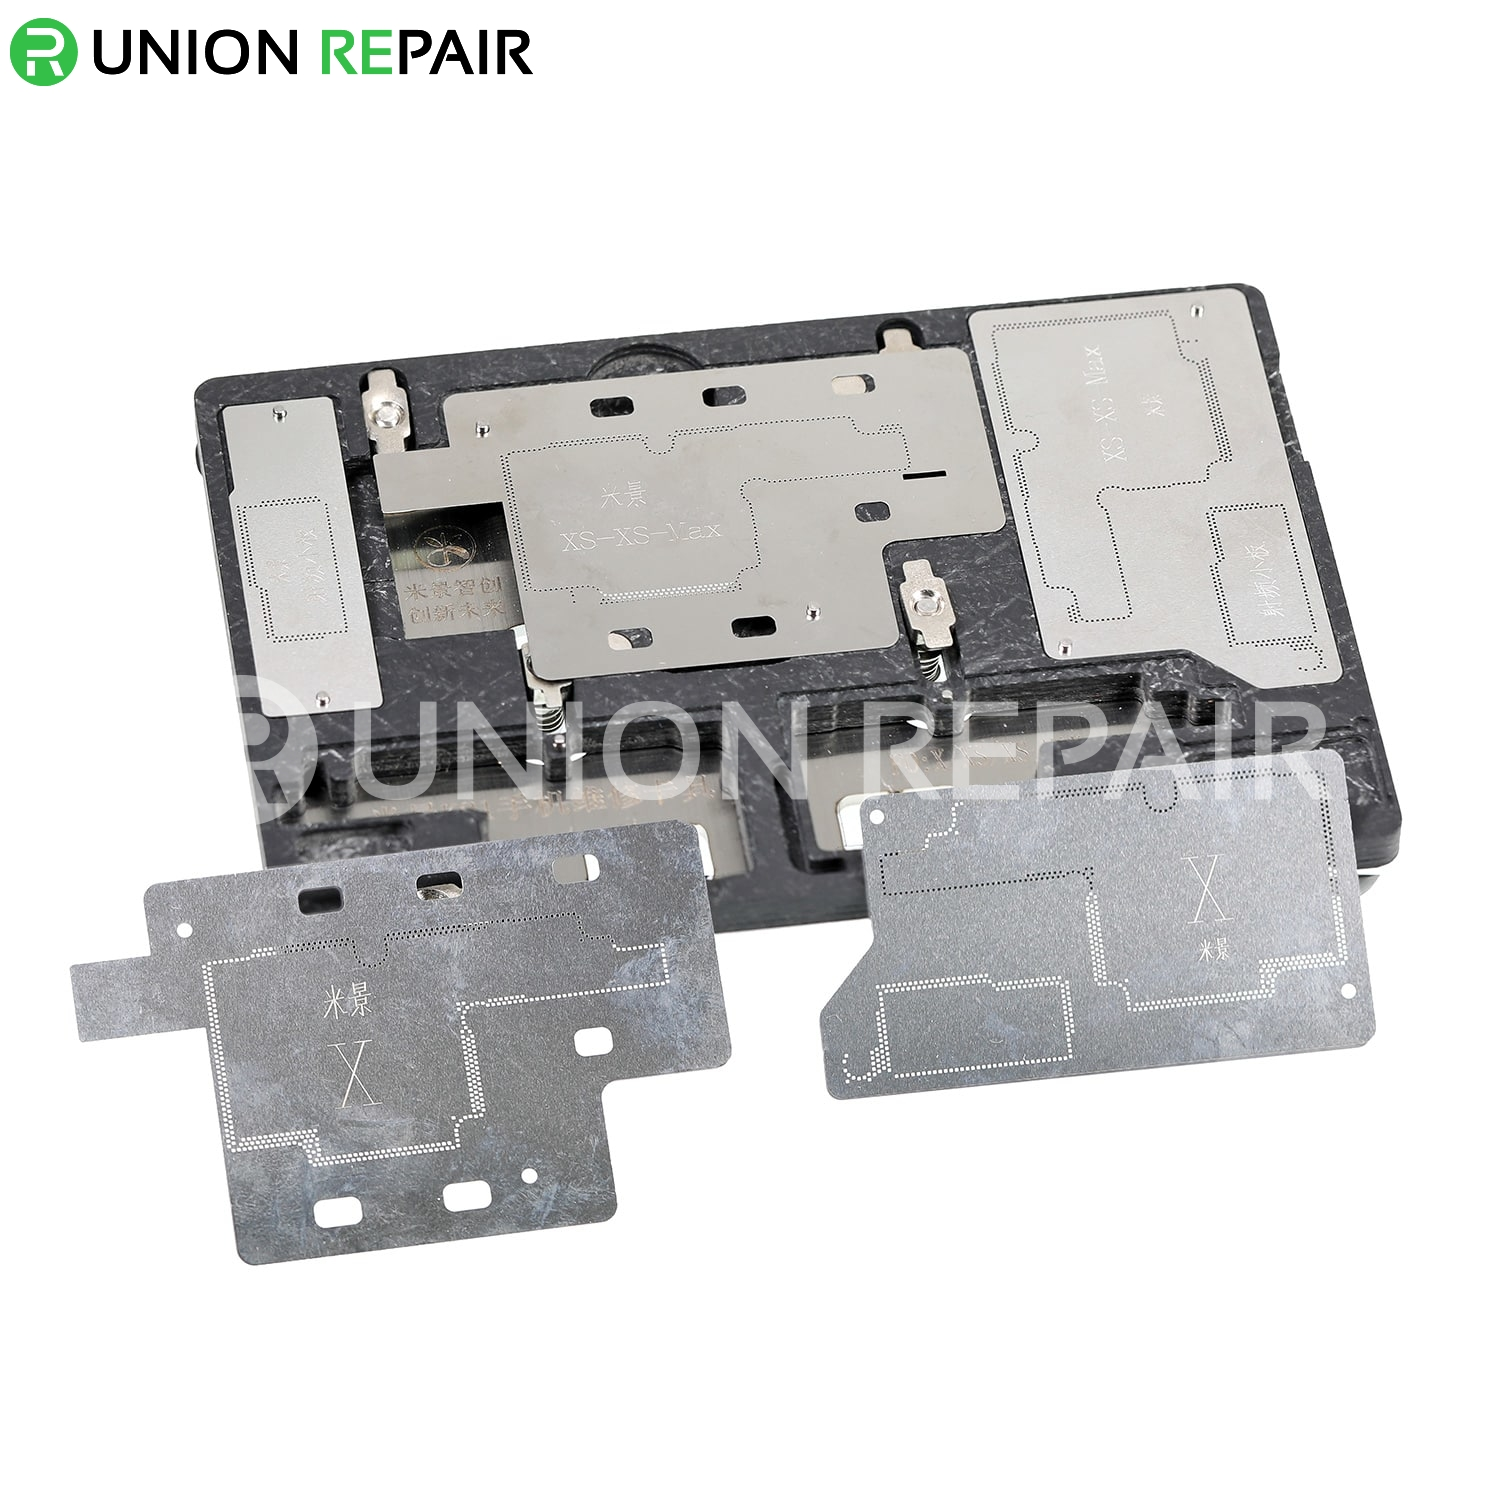 MiJing K21 Circuit Board PCB Holder for iPhone X/XS/XS MAX